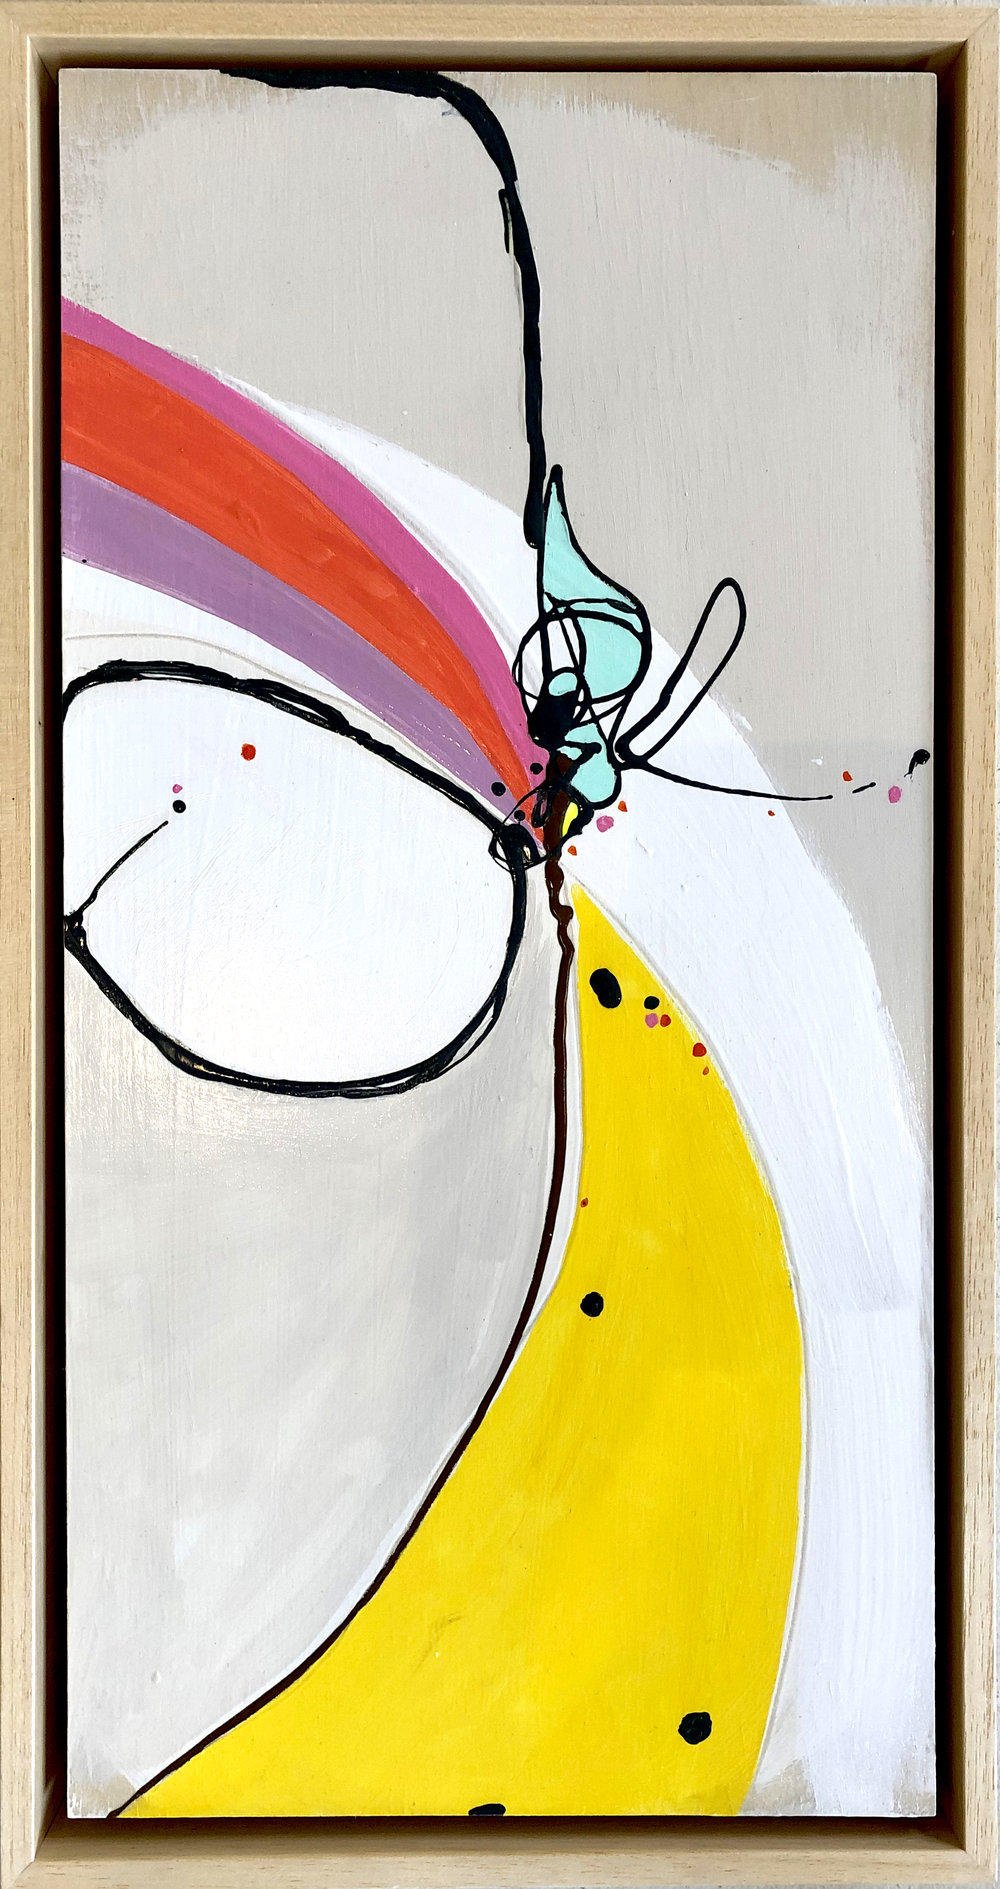 "Fireworks 4 - Teresa Roche11.5"" x 21.5""Mixed media on paper, mounted on panel, framed$325"